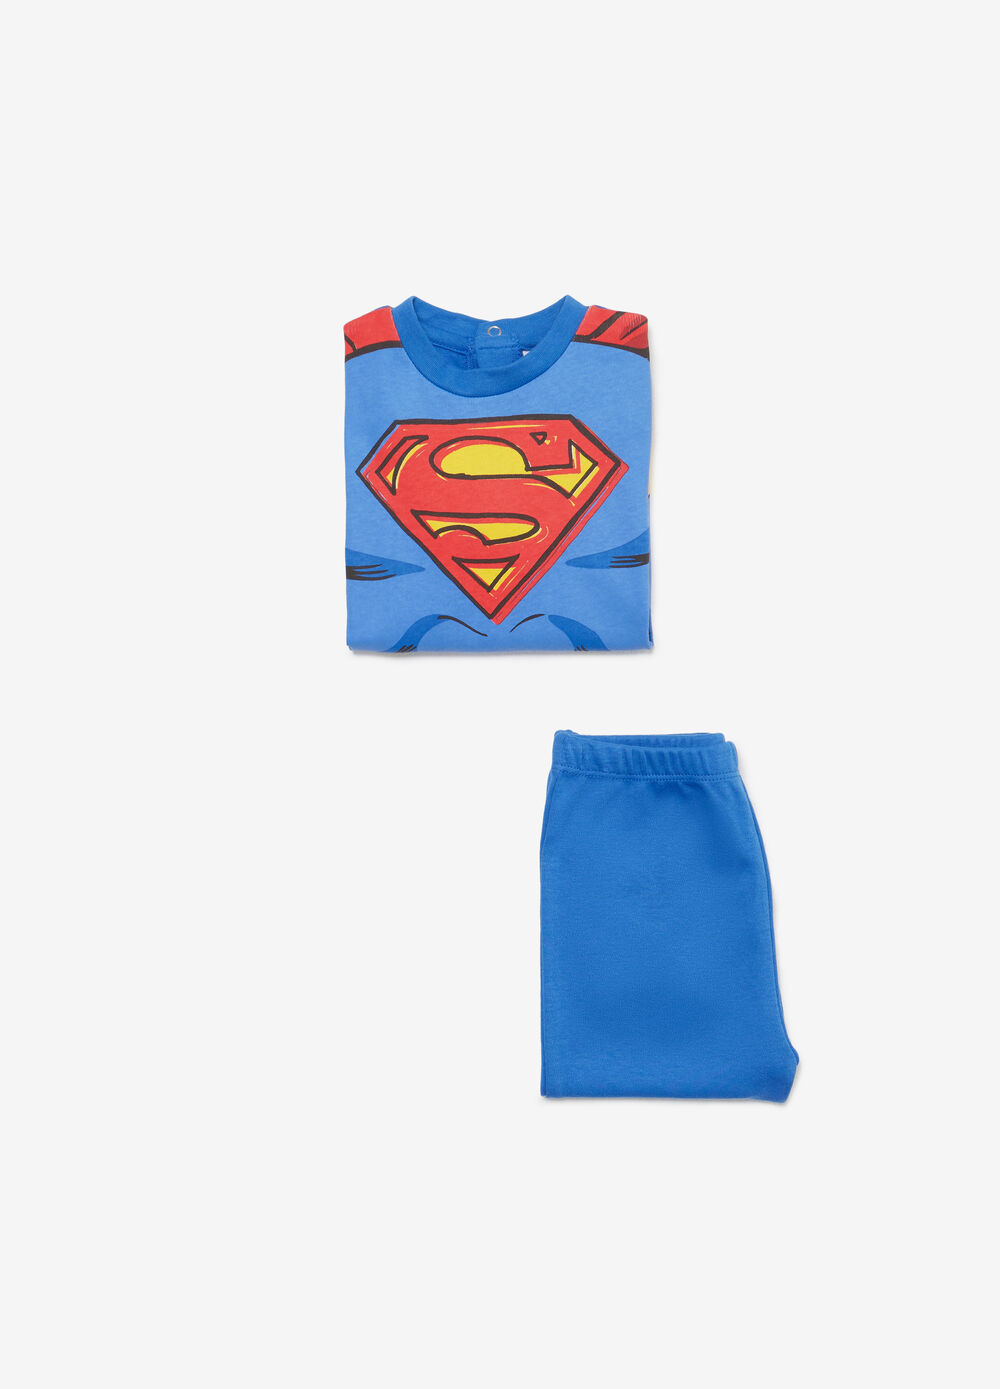 100% cotton pyjamas with Superman print